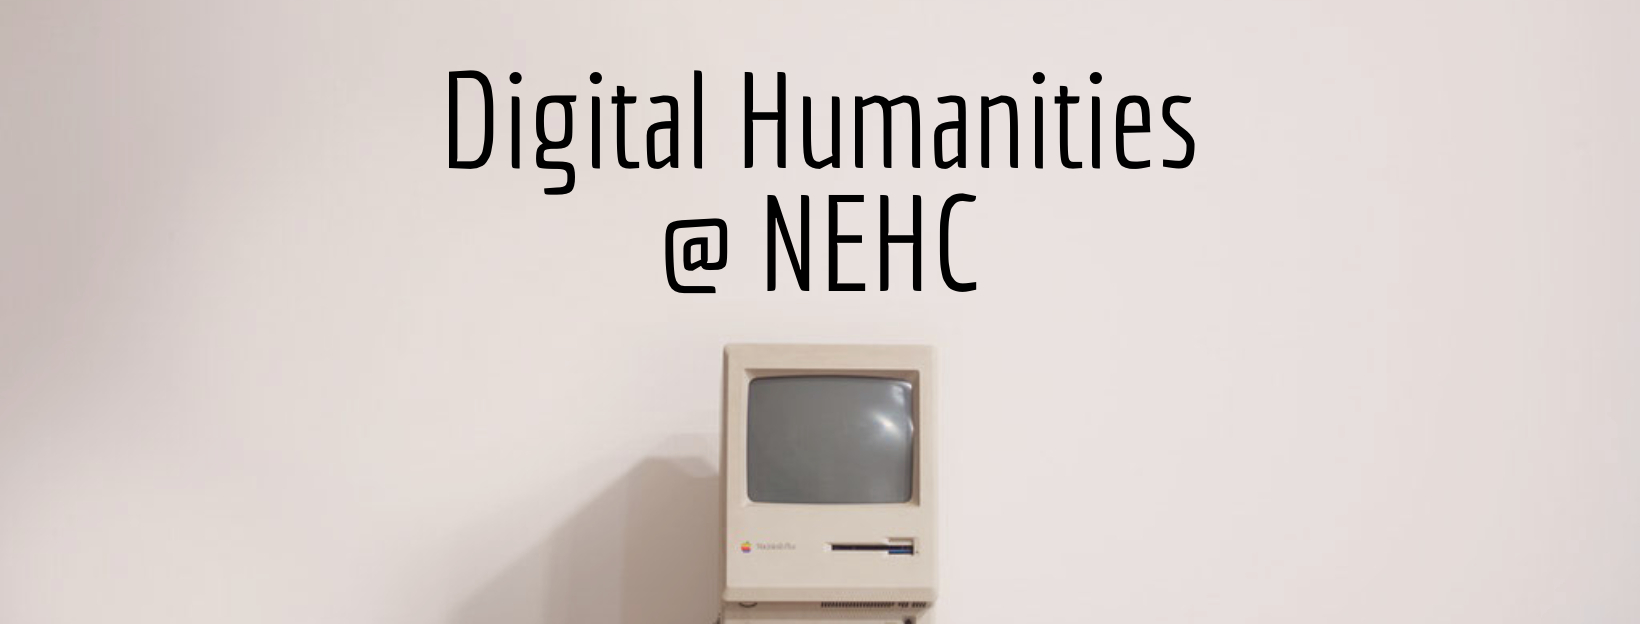 Digital Humanities at NEHC